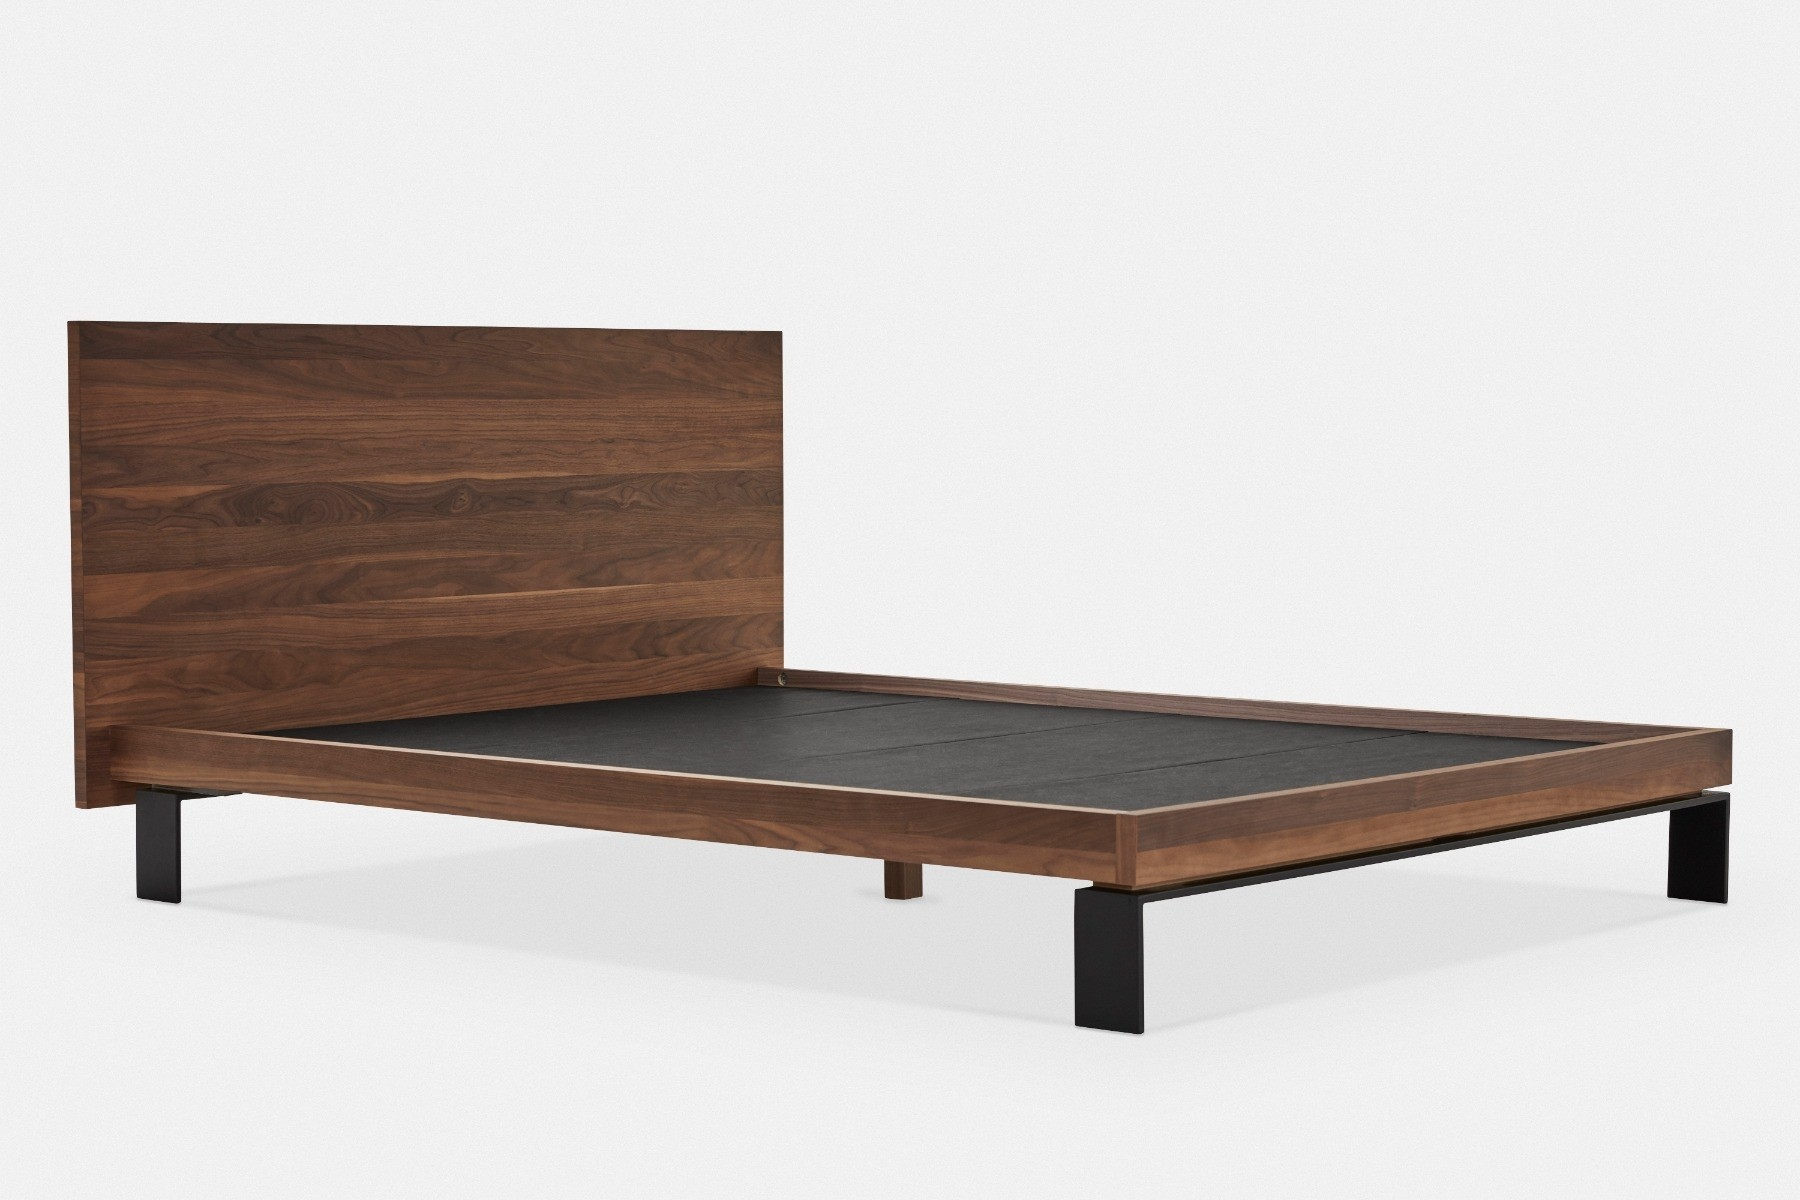 Meubles Mobican Furniture Bora Minimalist Wooden Bed Maison Corbeil